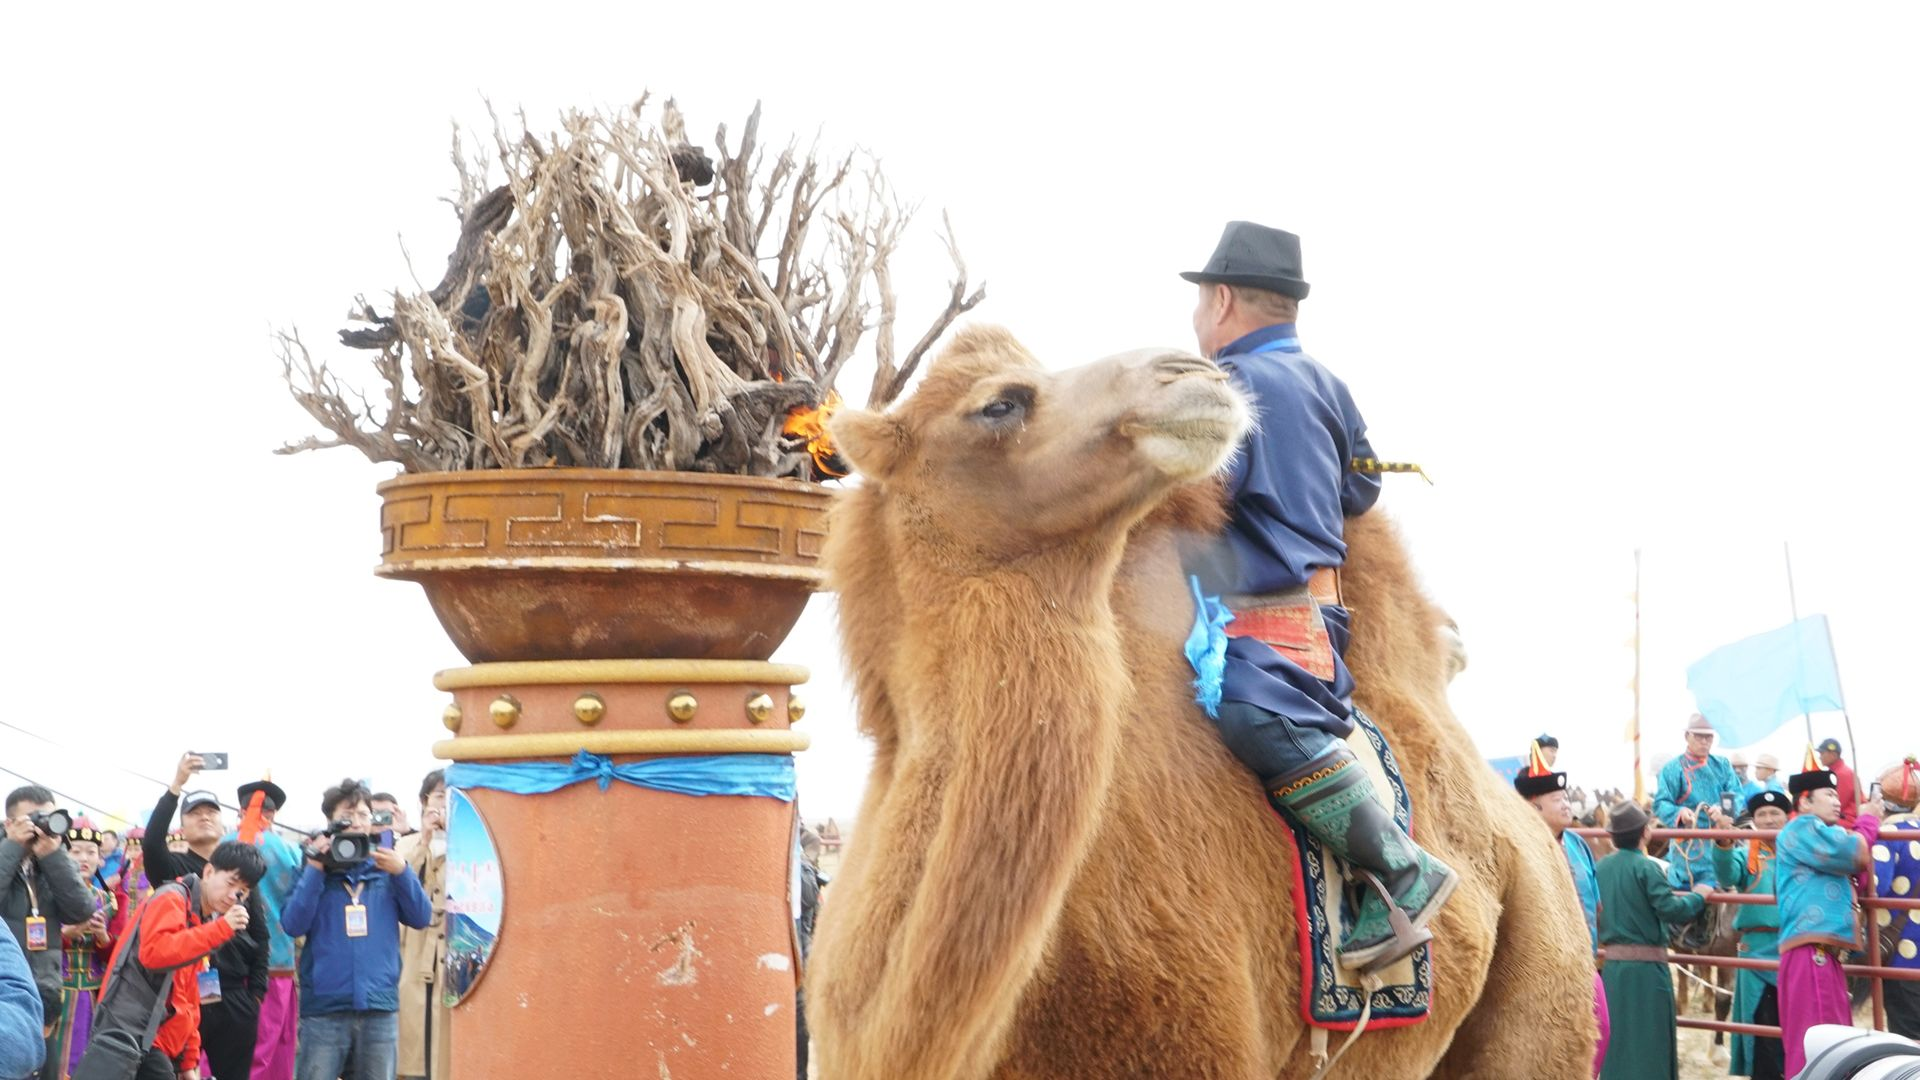 Firing ceremony at Camels' Festival's opening. This is from Tracing Heritage [Photo of the day - October 2021]